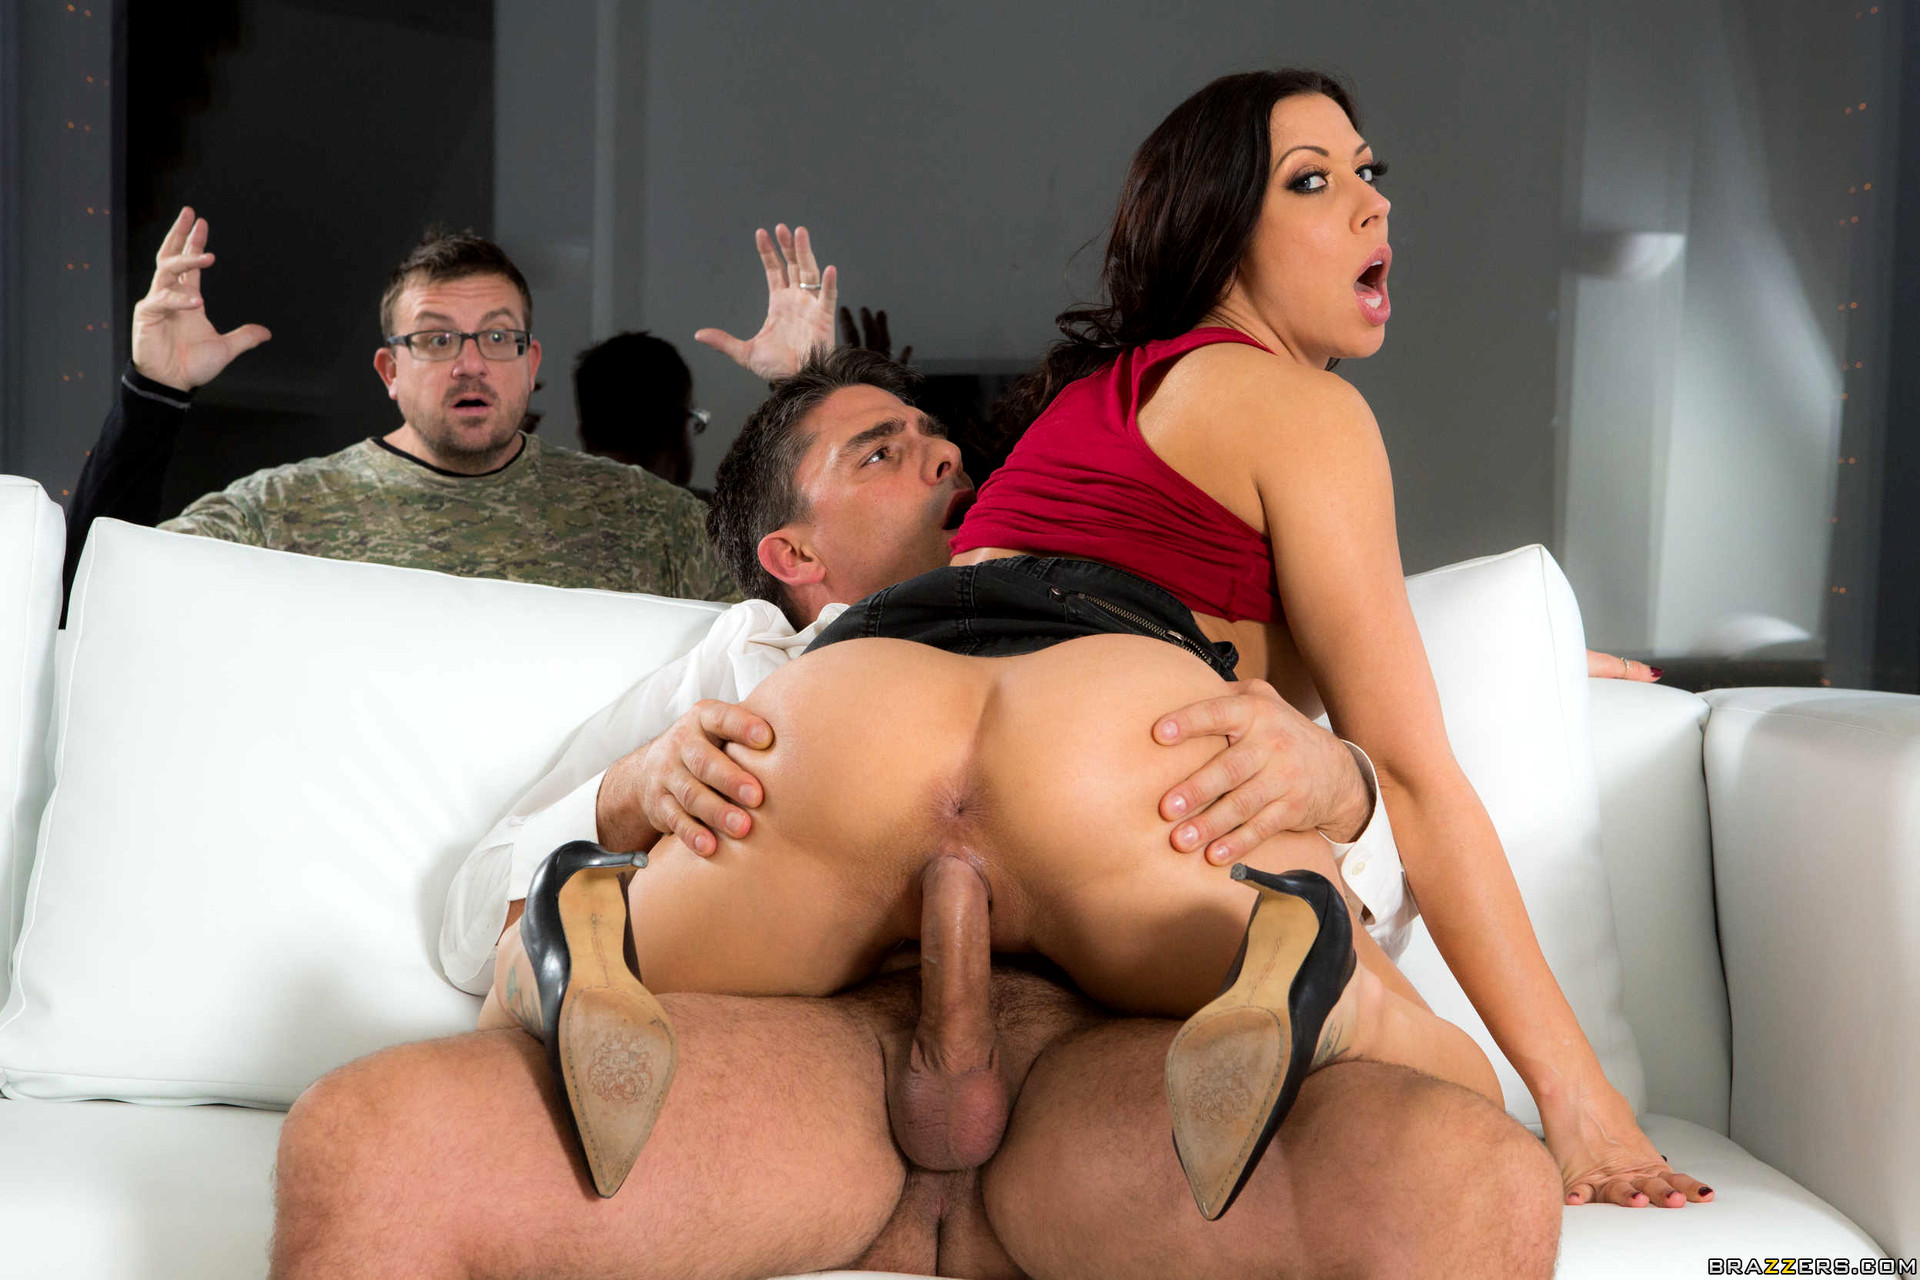 Watch free anal porn pics and xxx anal sex clips online